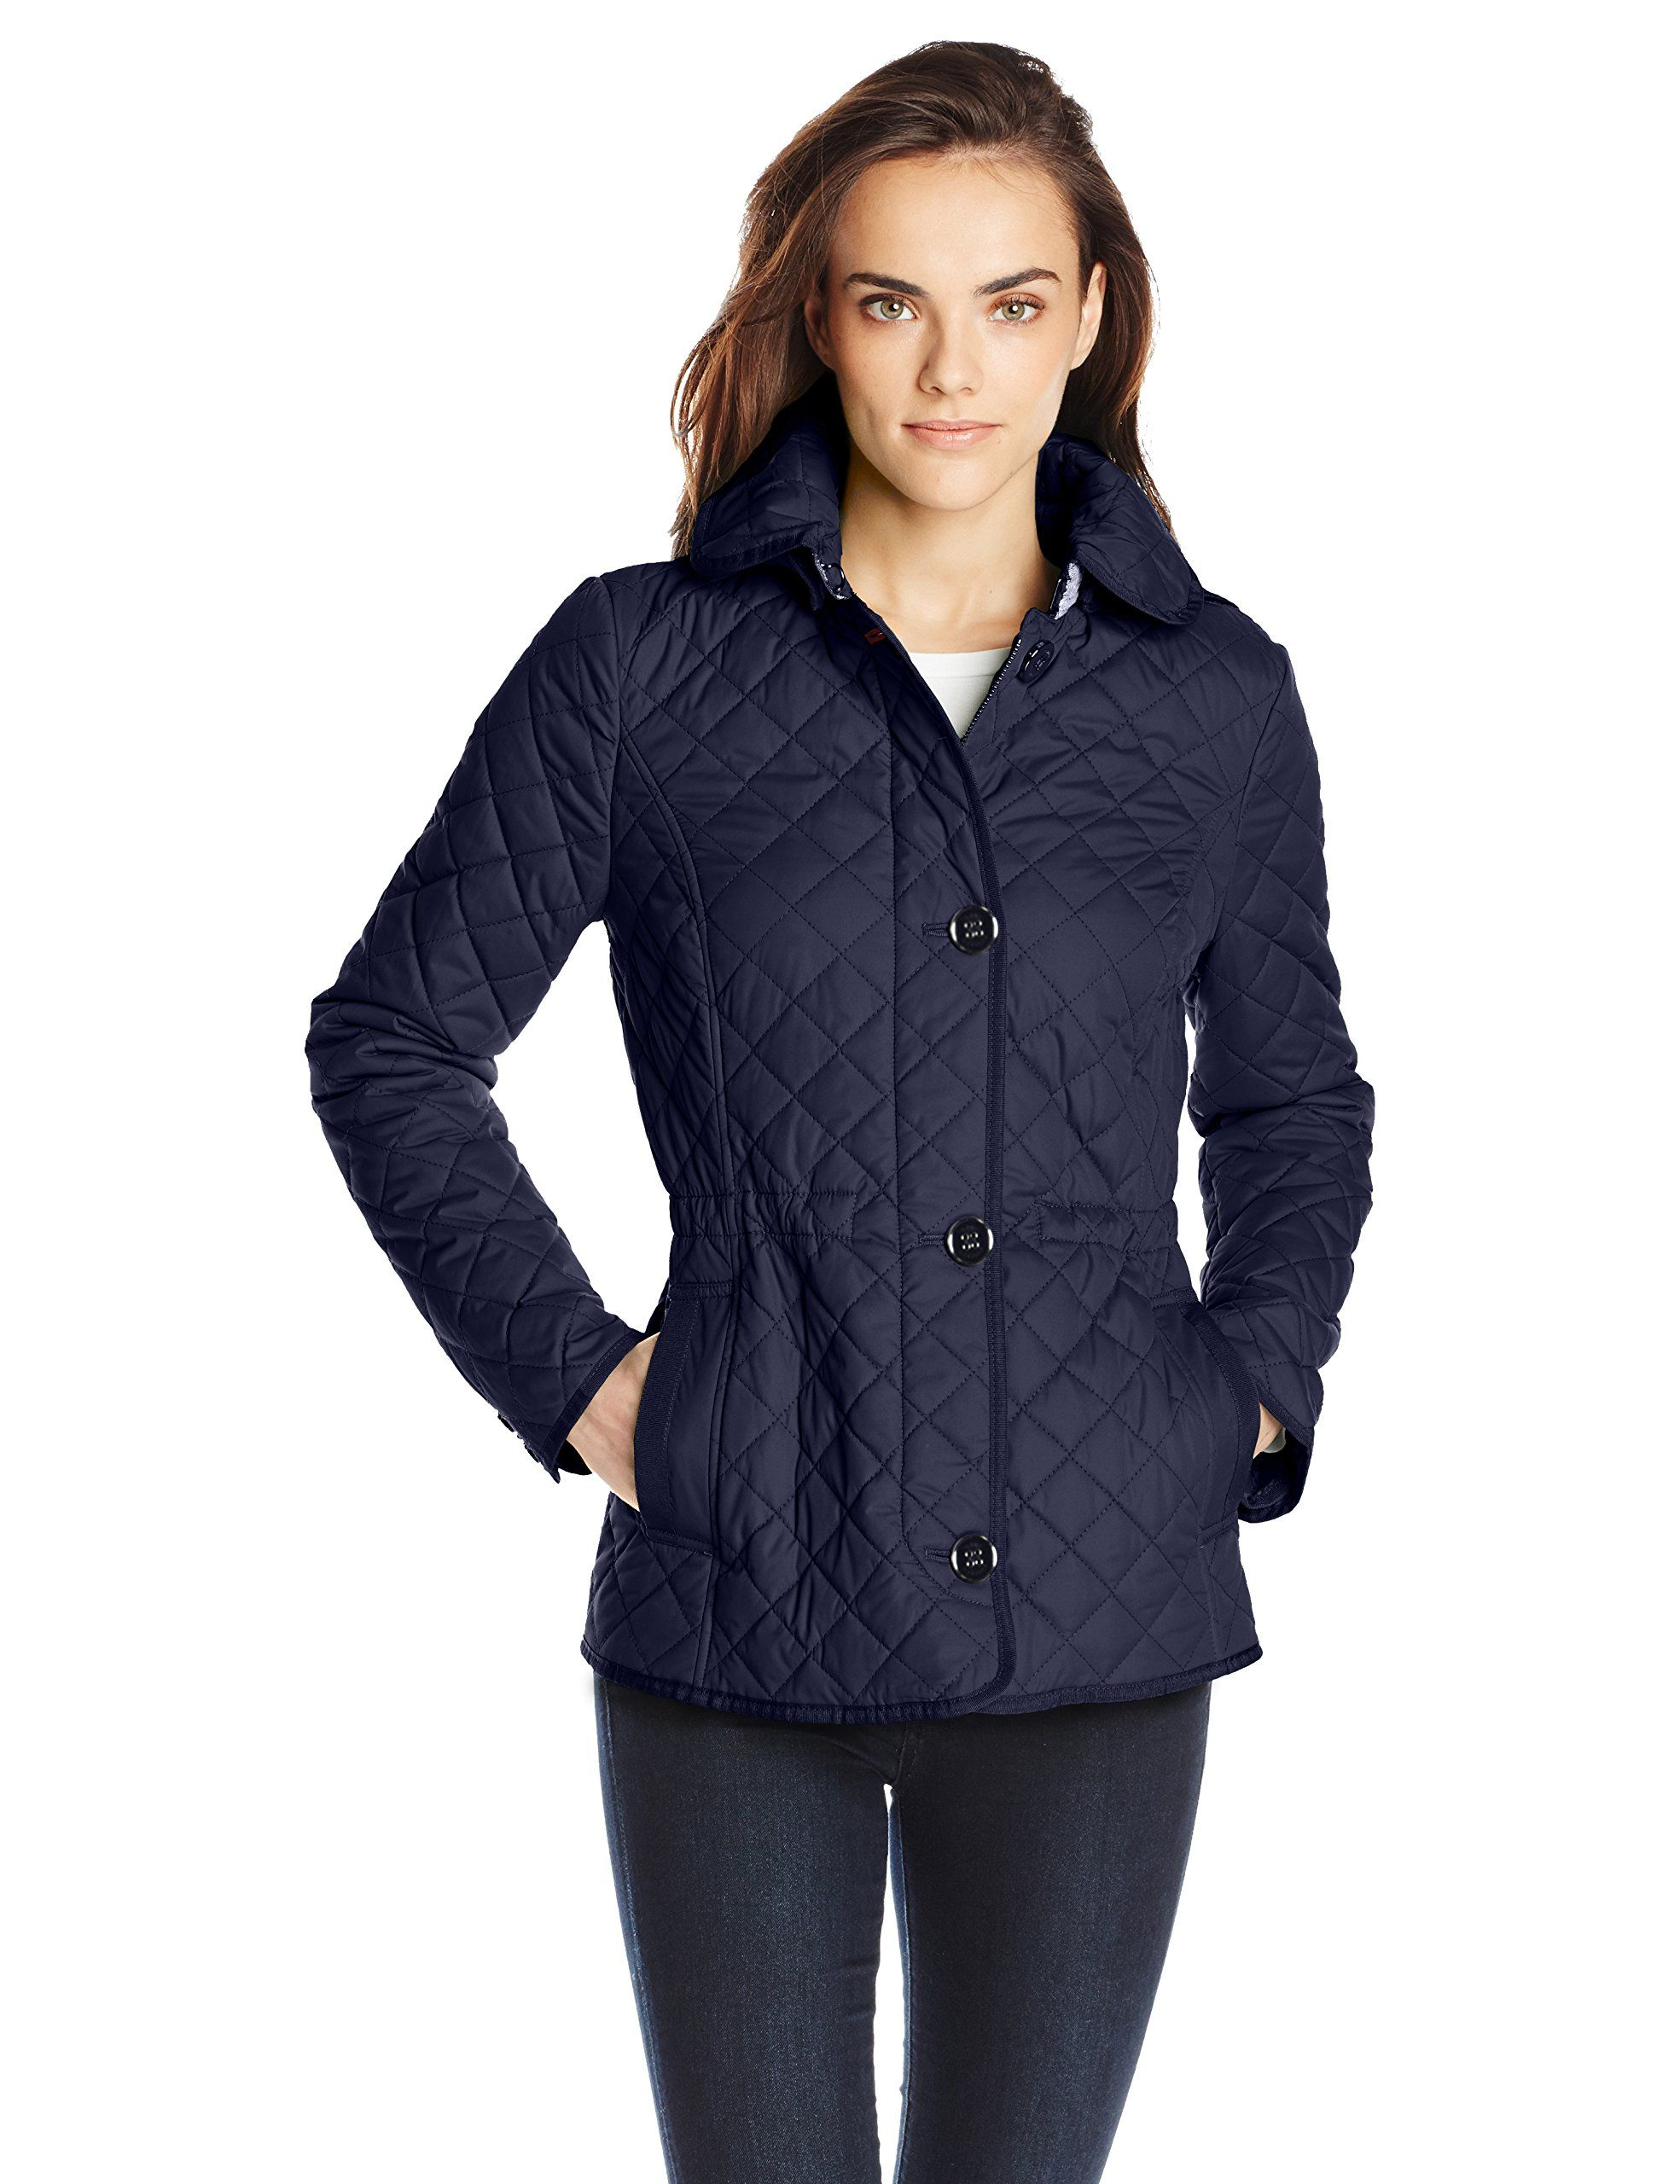 Tommy Hilfiger Women S Hooded Quilted Jacket At Amazon Women S Coats Shop Womens Quilted Jacket Tommy Hilfiger Women Quilted Jacket [ 2560 x 1969 Pixel ]